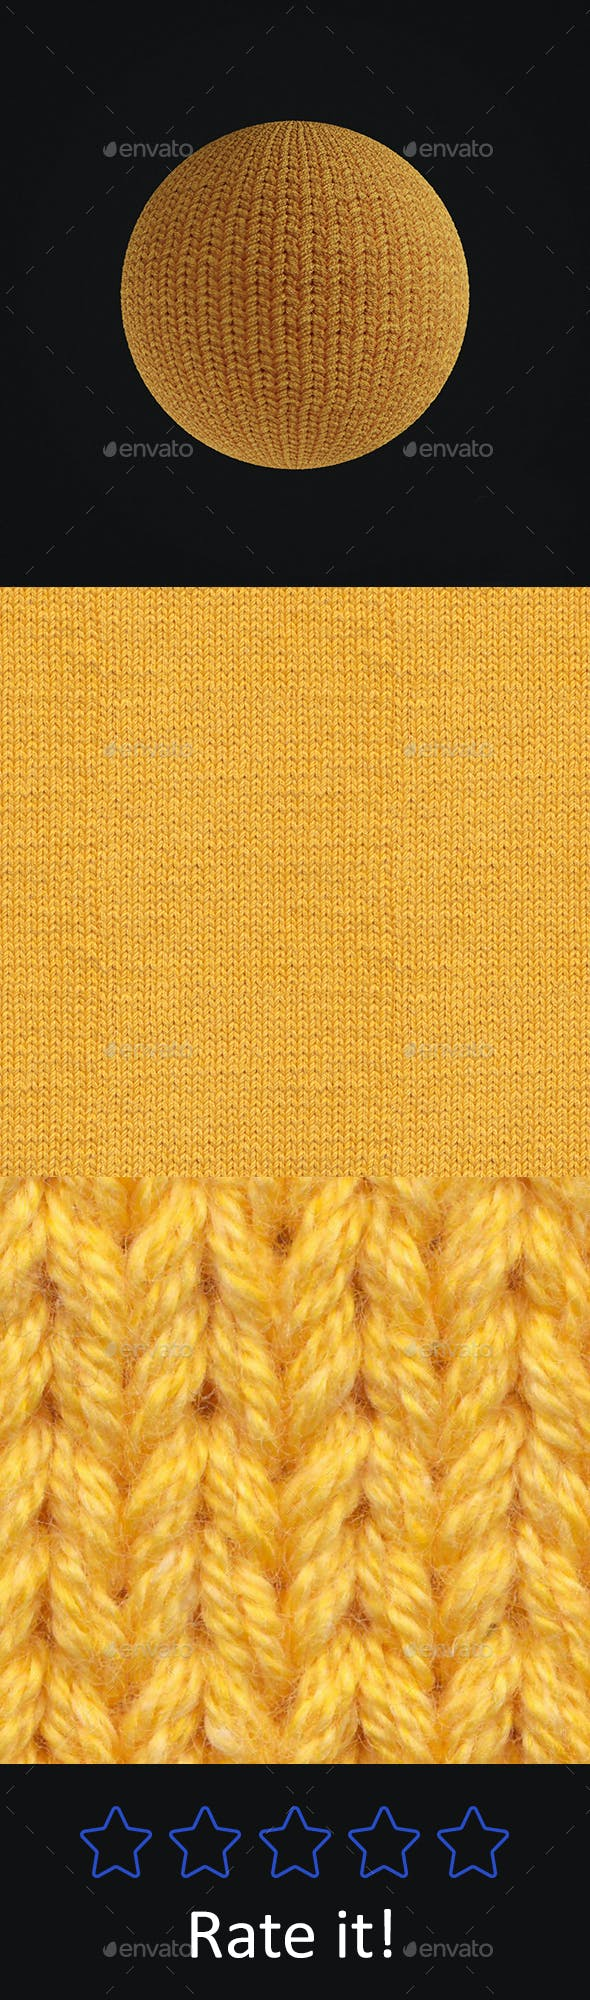 Yellow Wool Seamless Texture - 3DOcean Item for Sale